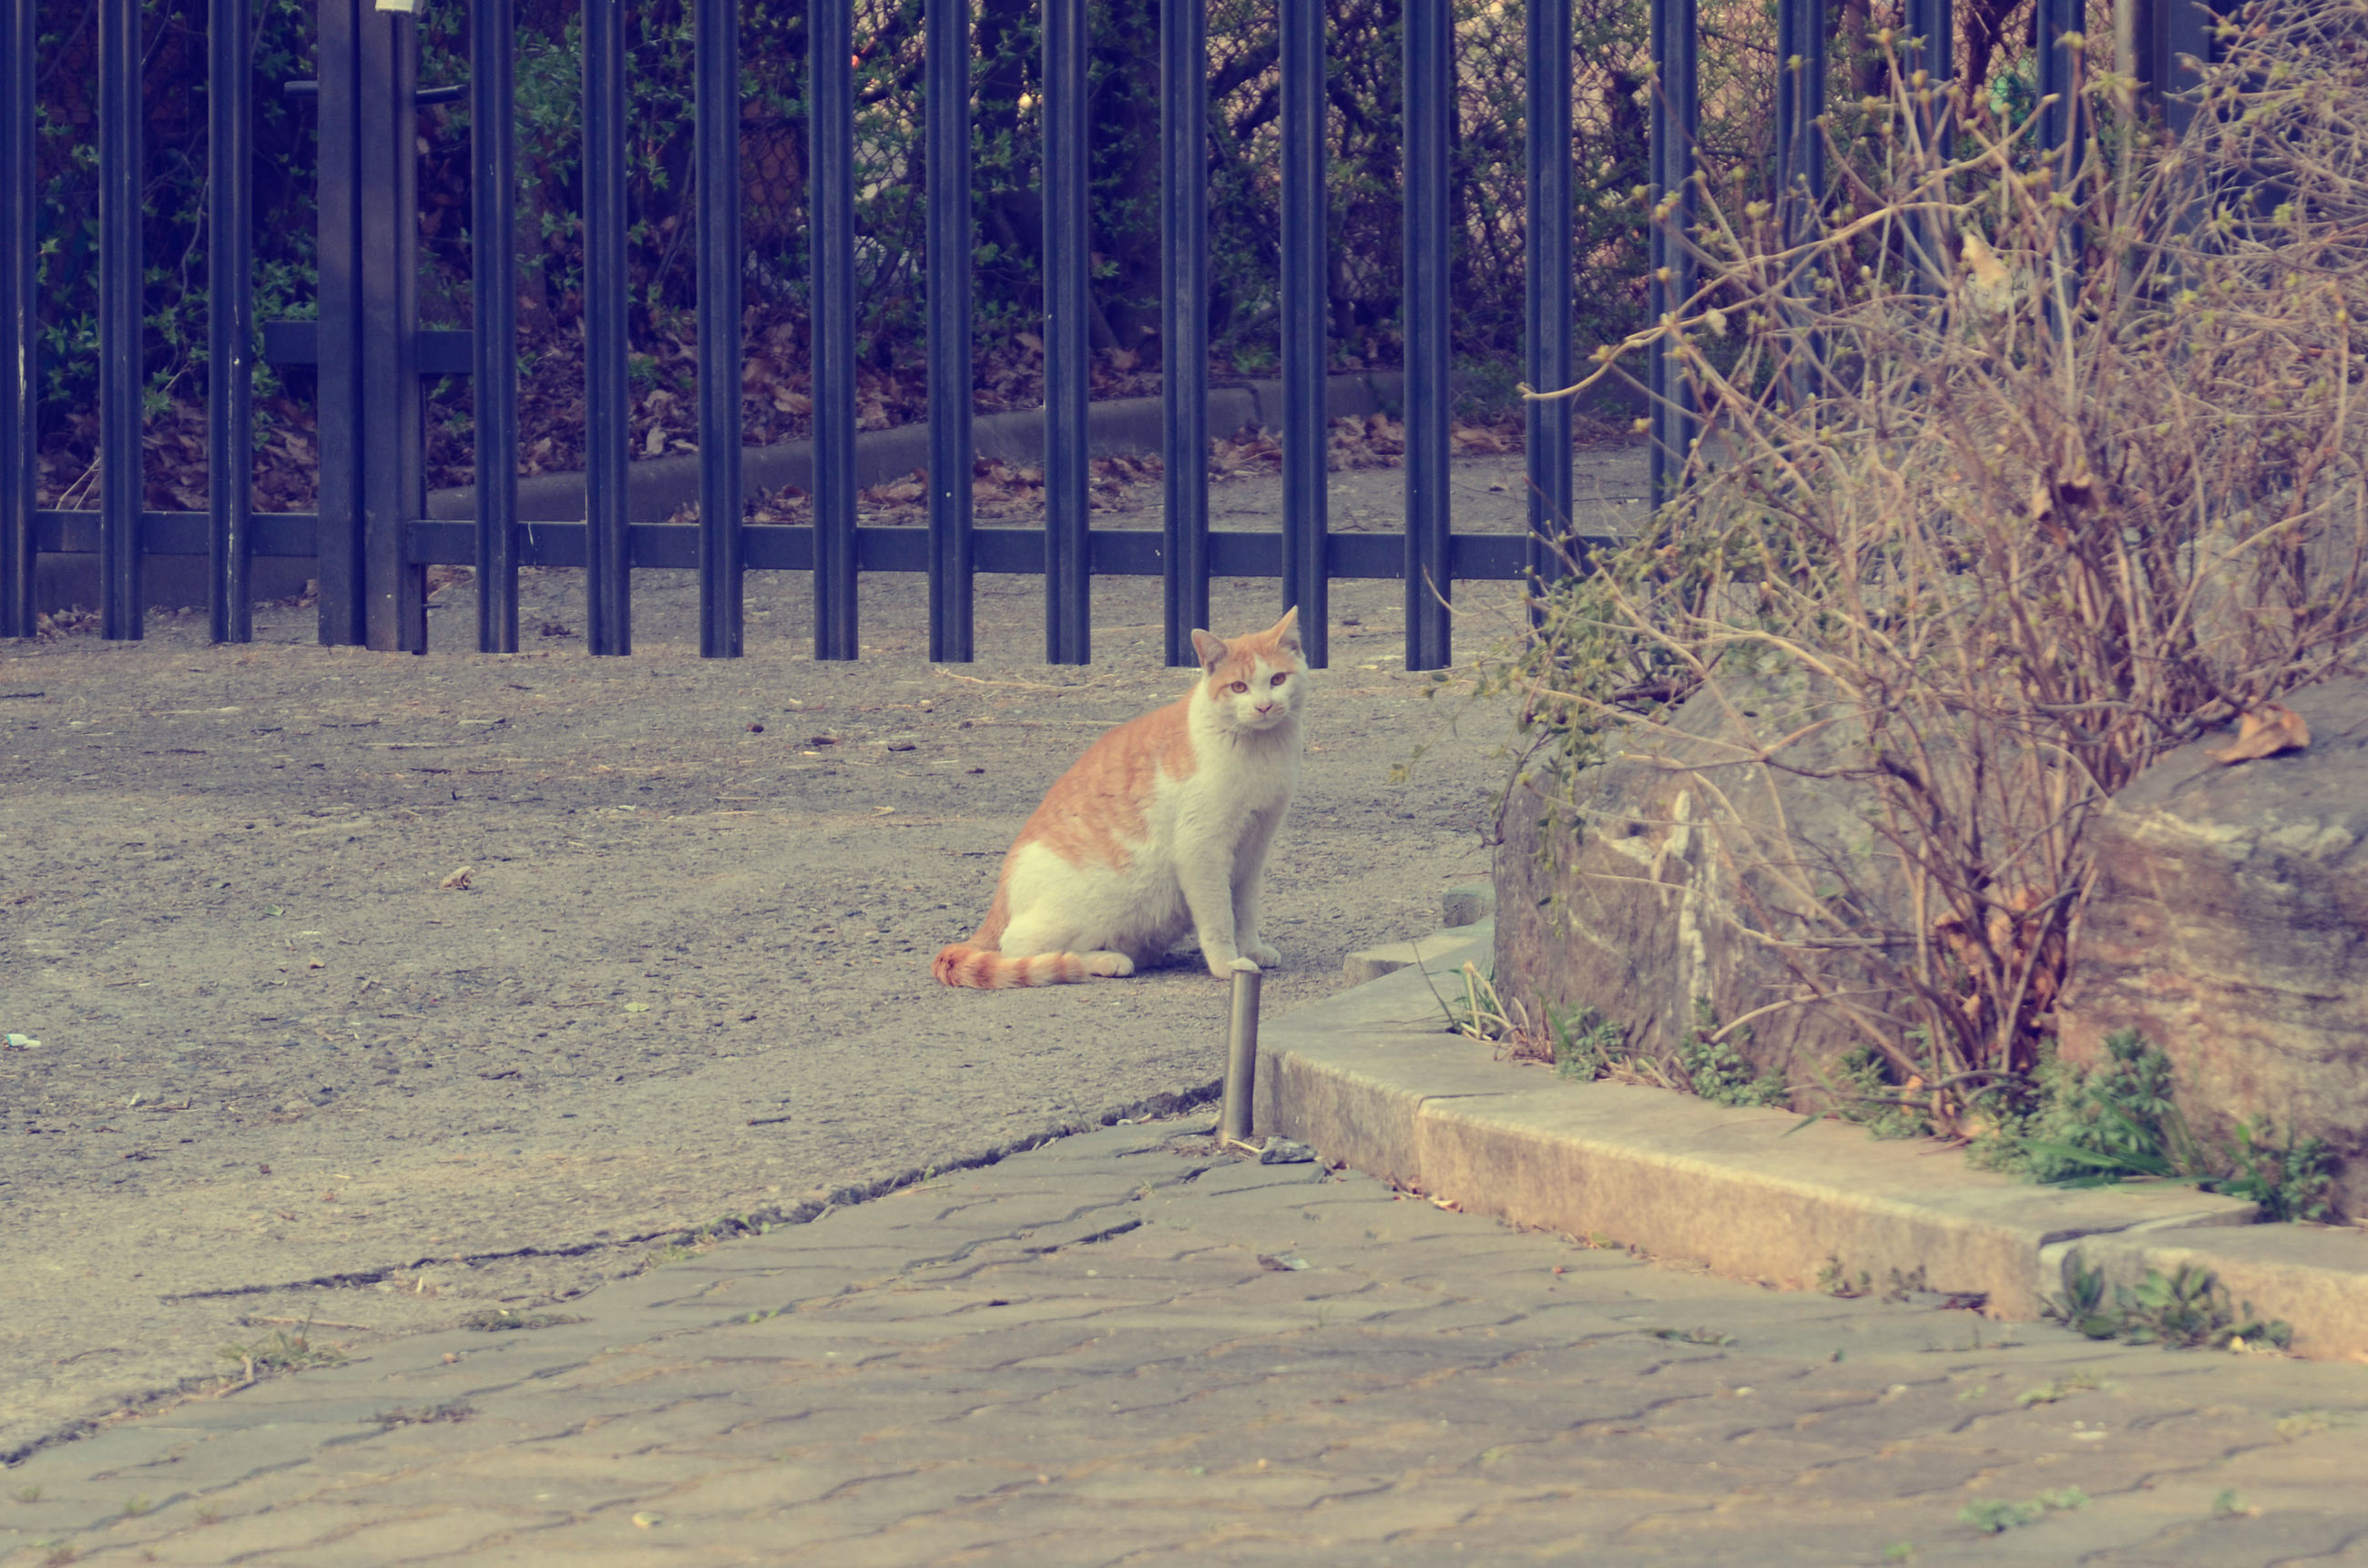 animal themes, mammal, one animal, domestic animals, pets, no people, nature, day, cage, animals in the wild, outdoors, feline